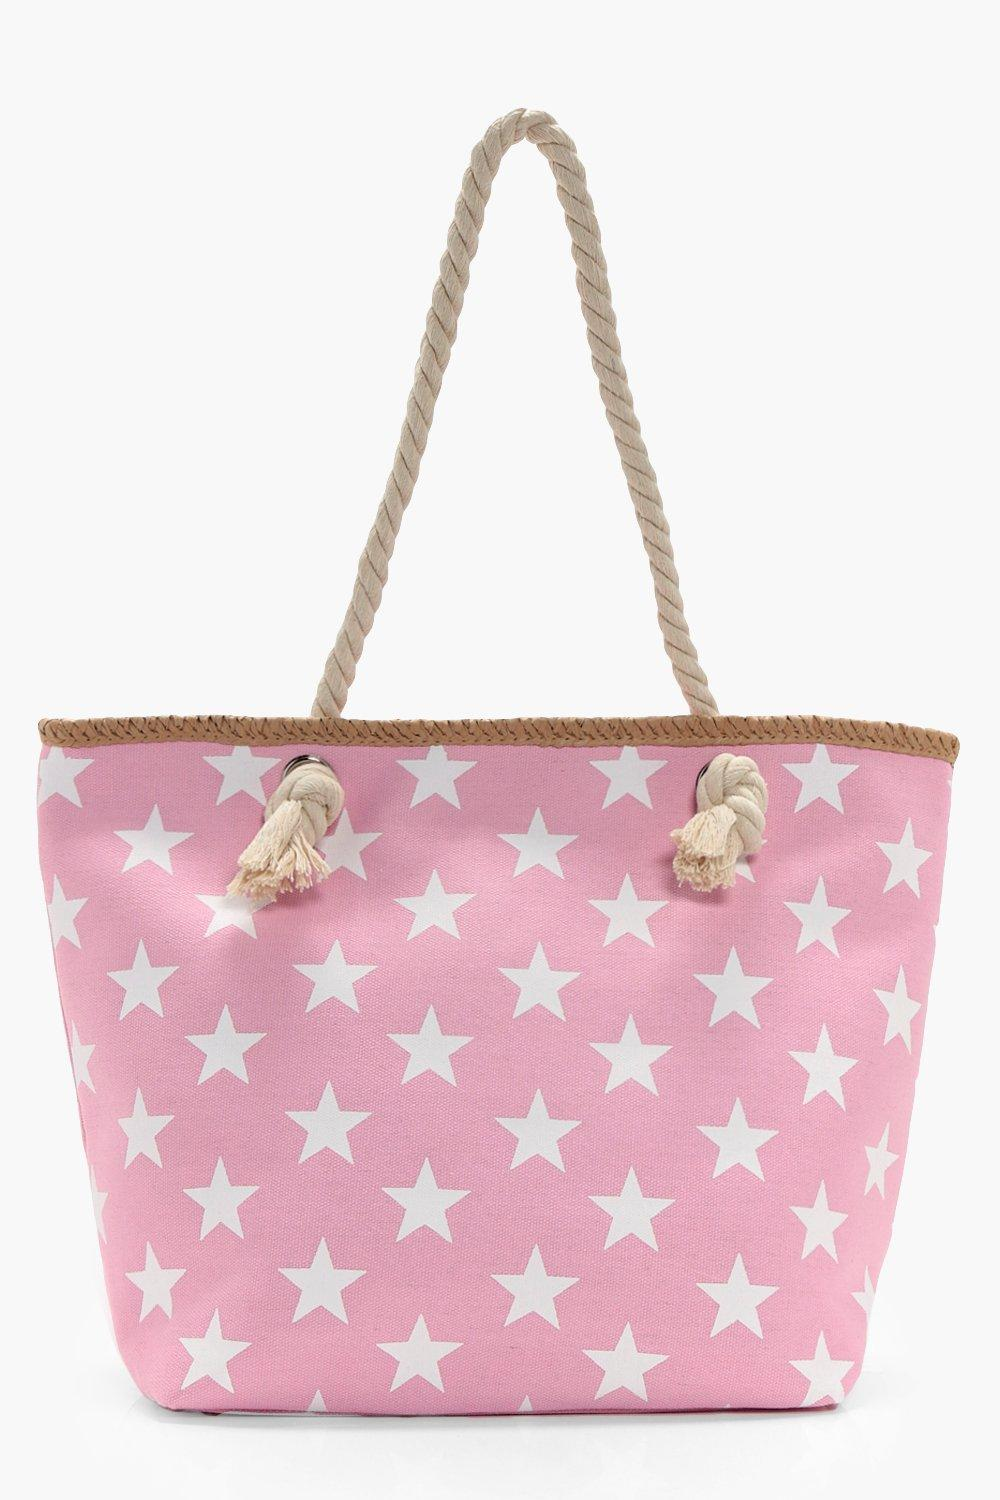 All Over Star Print Beach Bag - pink - Tilly All O